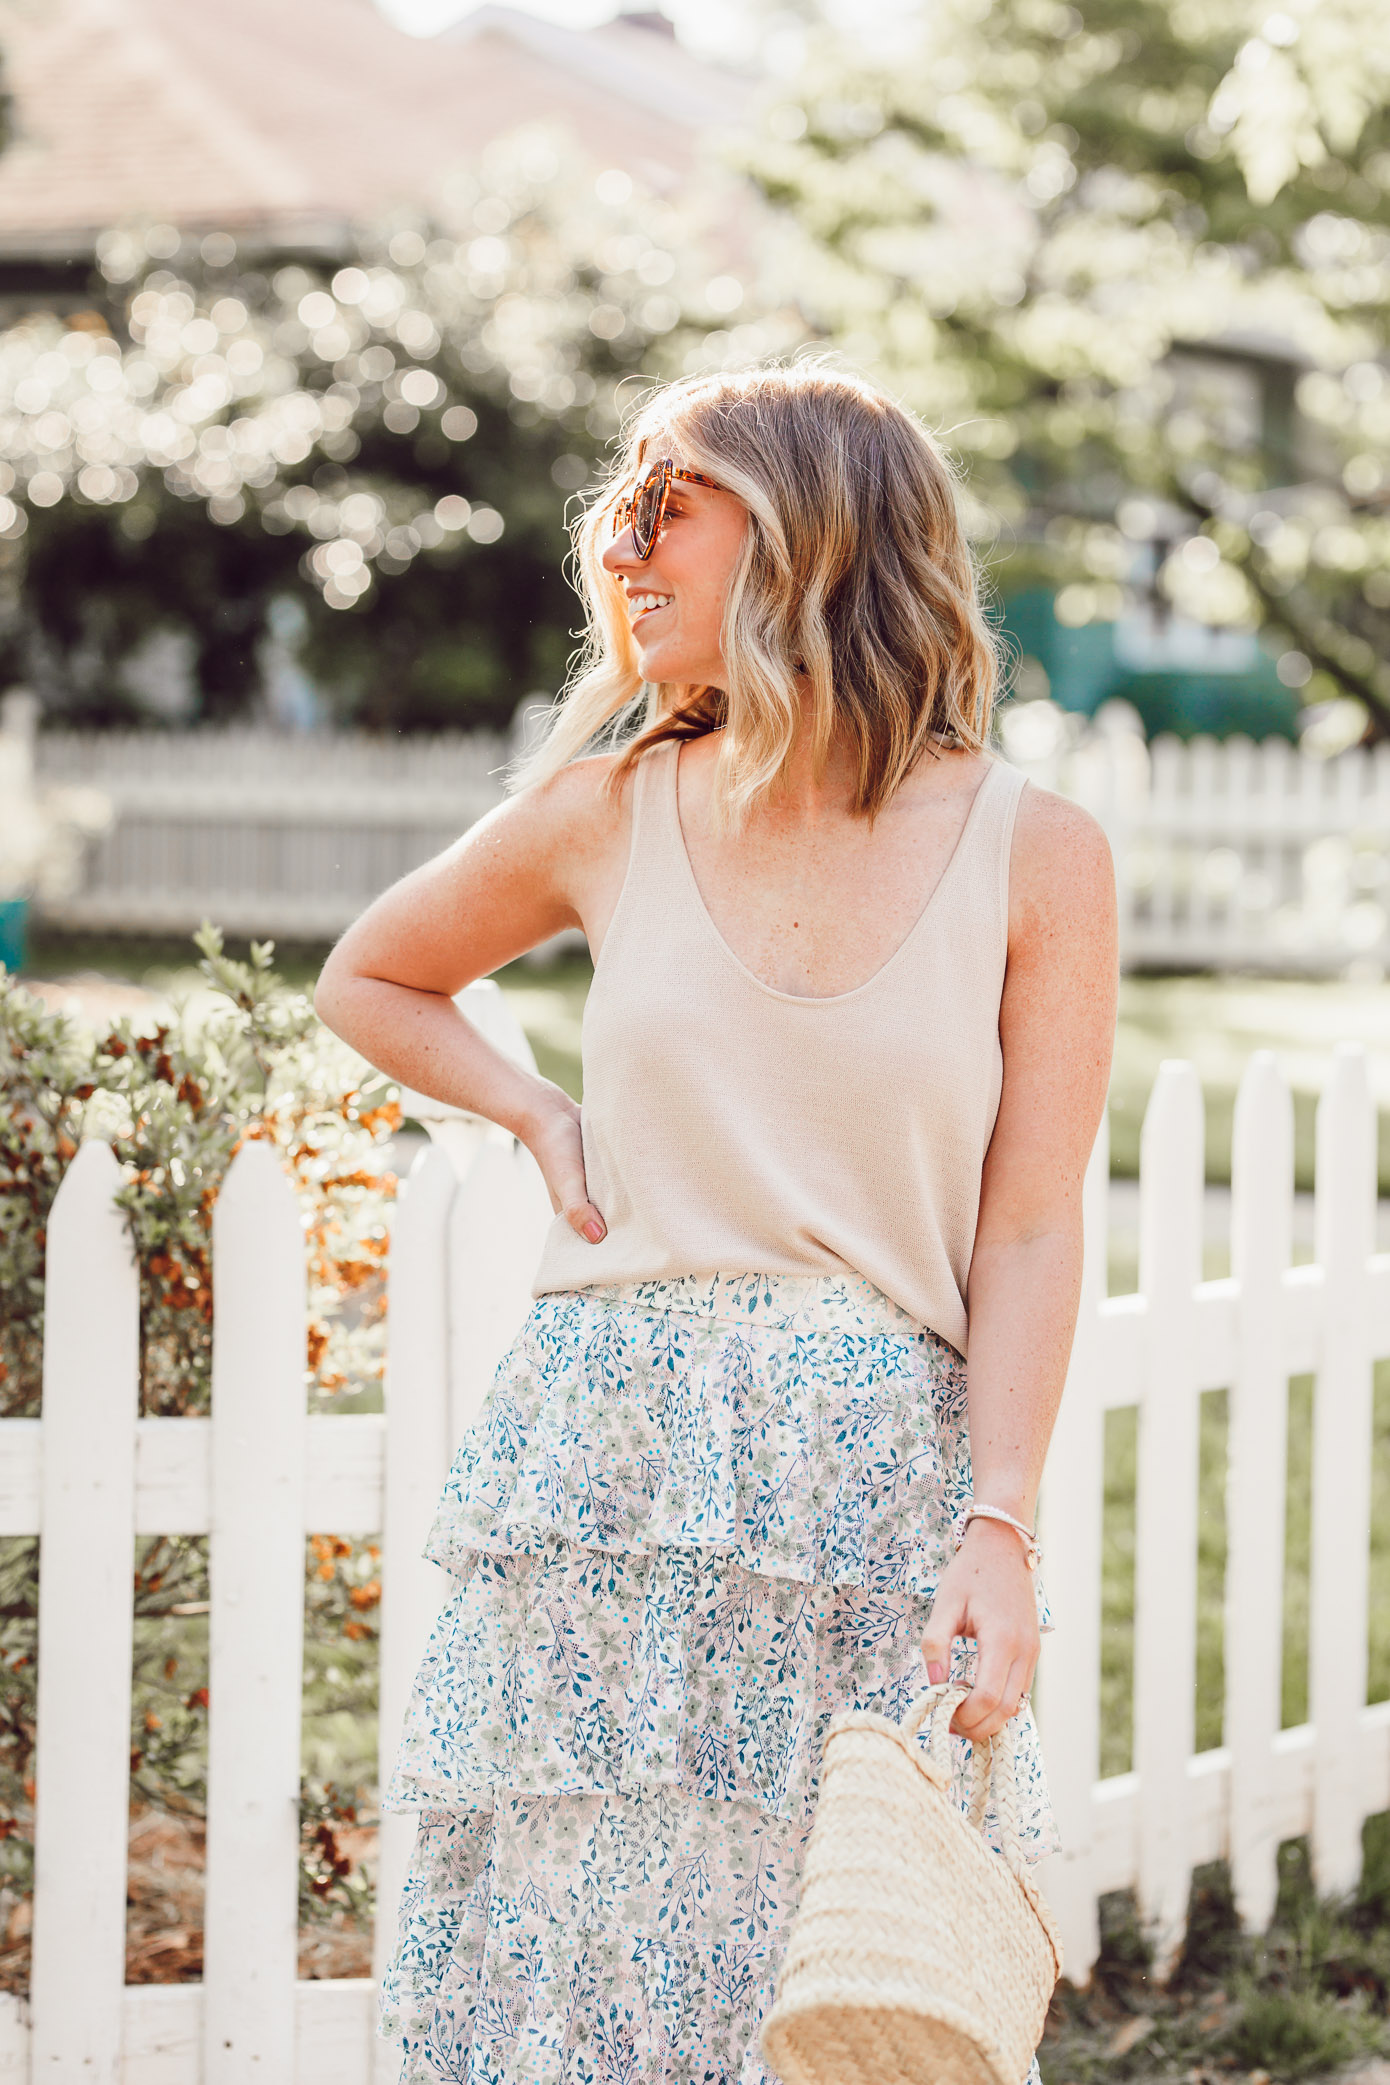 Sweater Tanks for Summer | How to Style a Sweater Tank when it's hot outside | Louella Reese